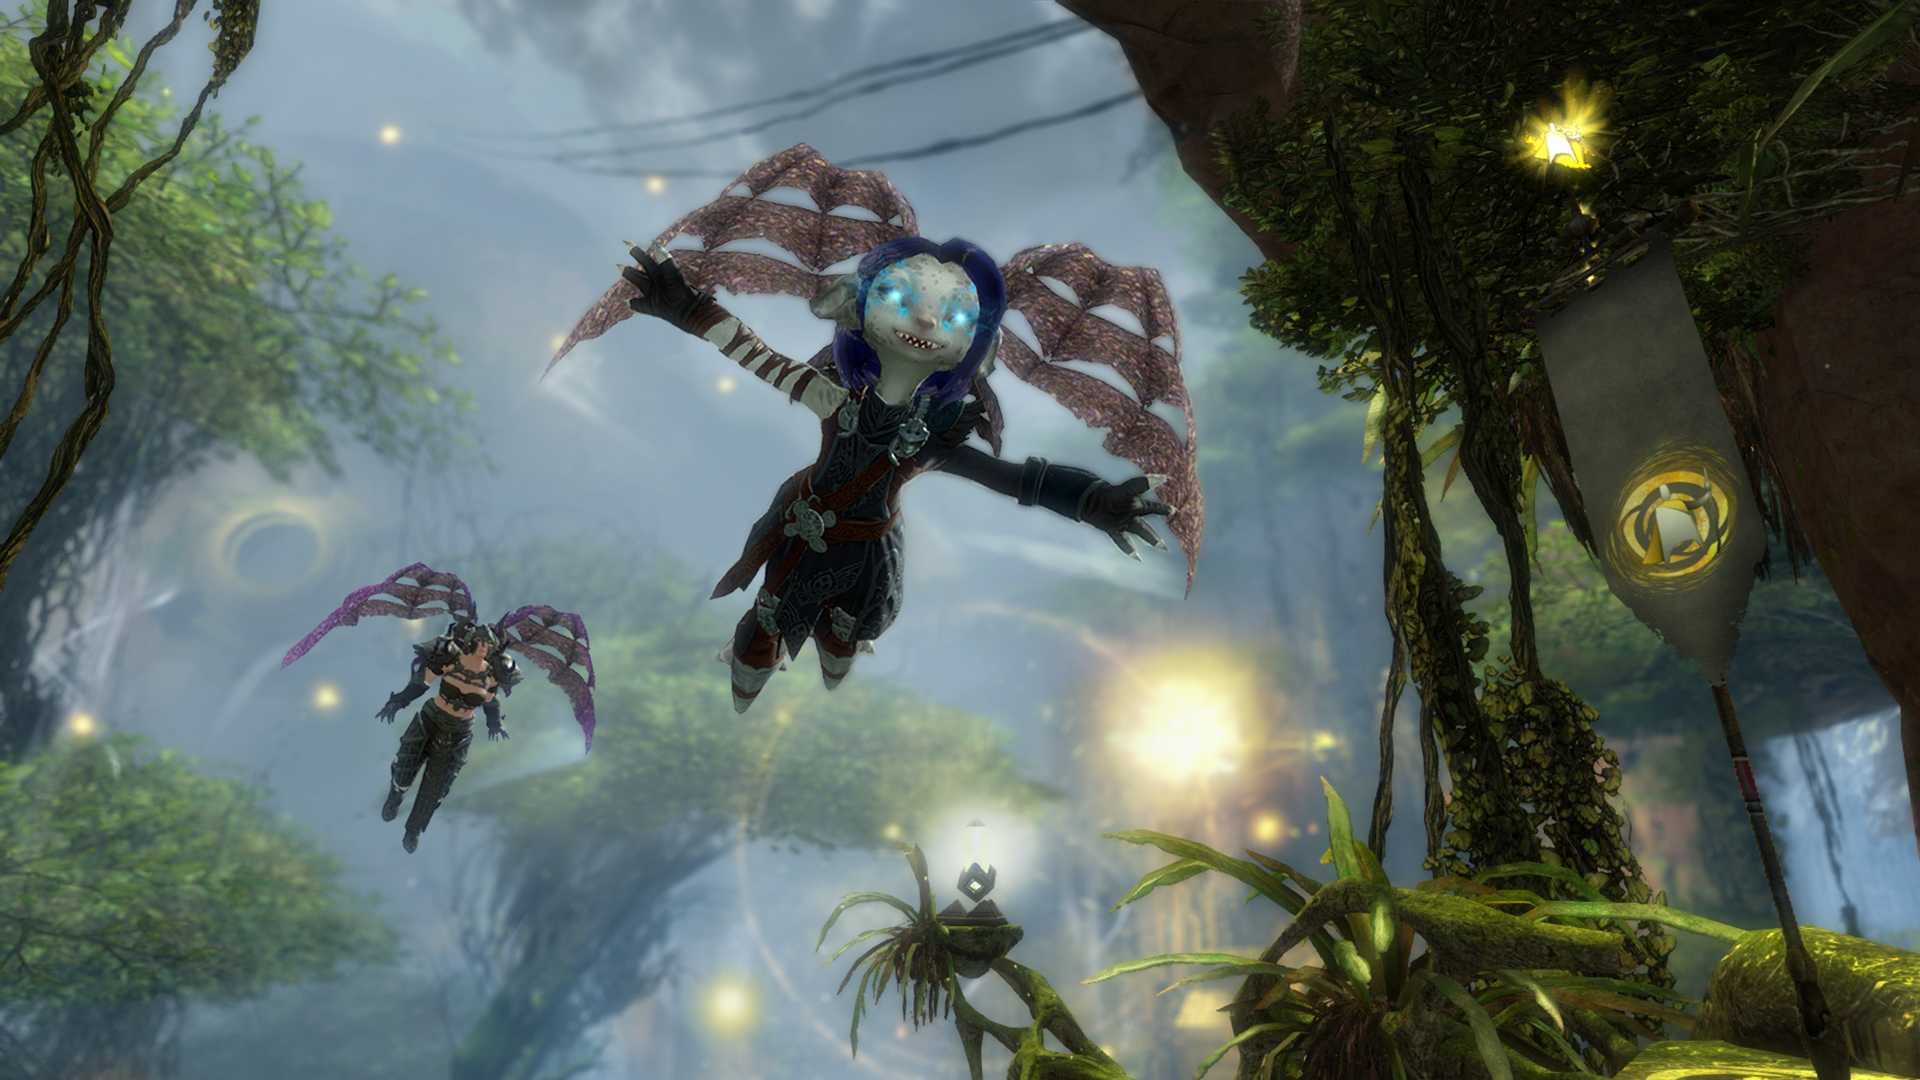 GW2_HoT_10_2015_Gliding_Mastery_in_Auric_Basin_Adventure